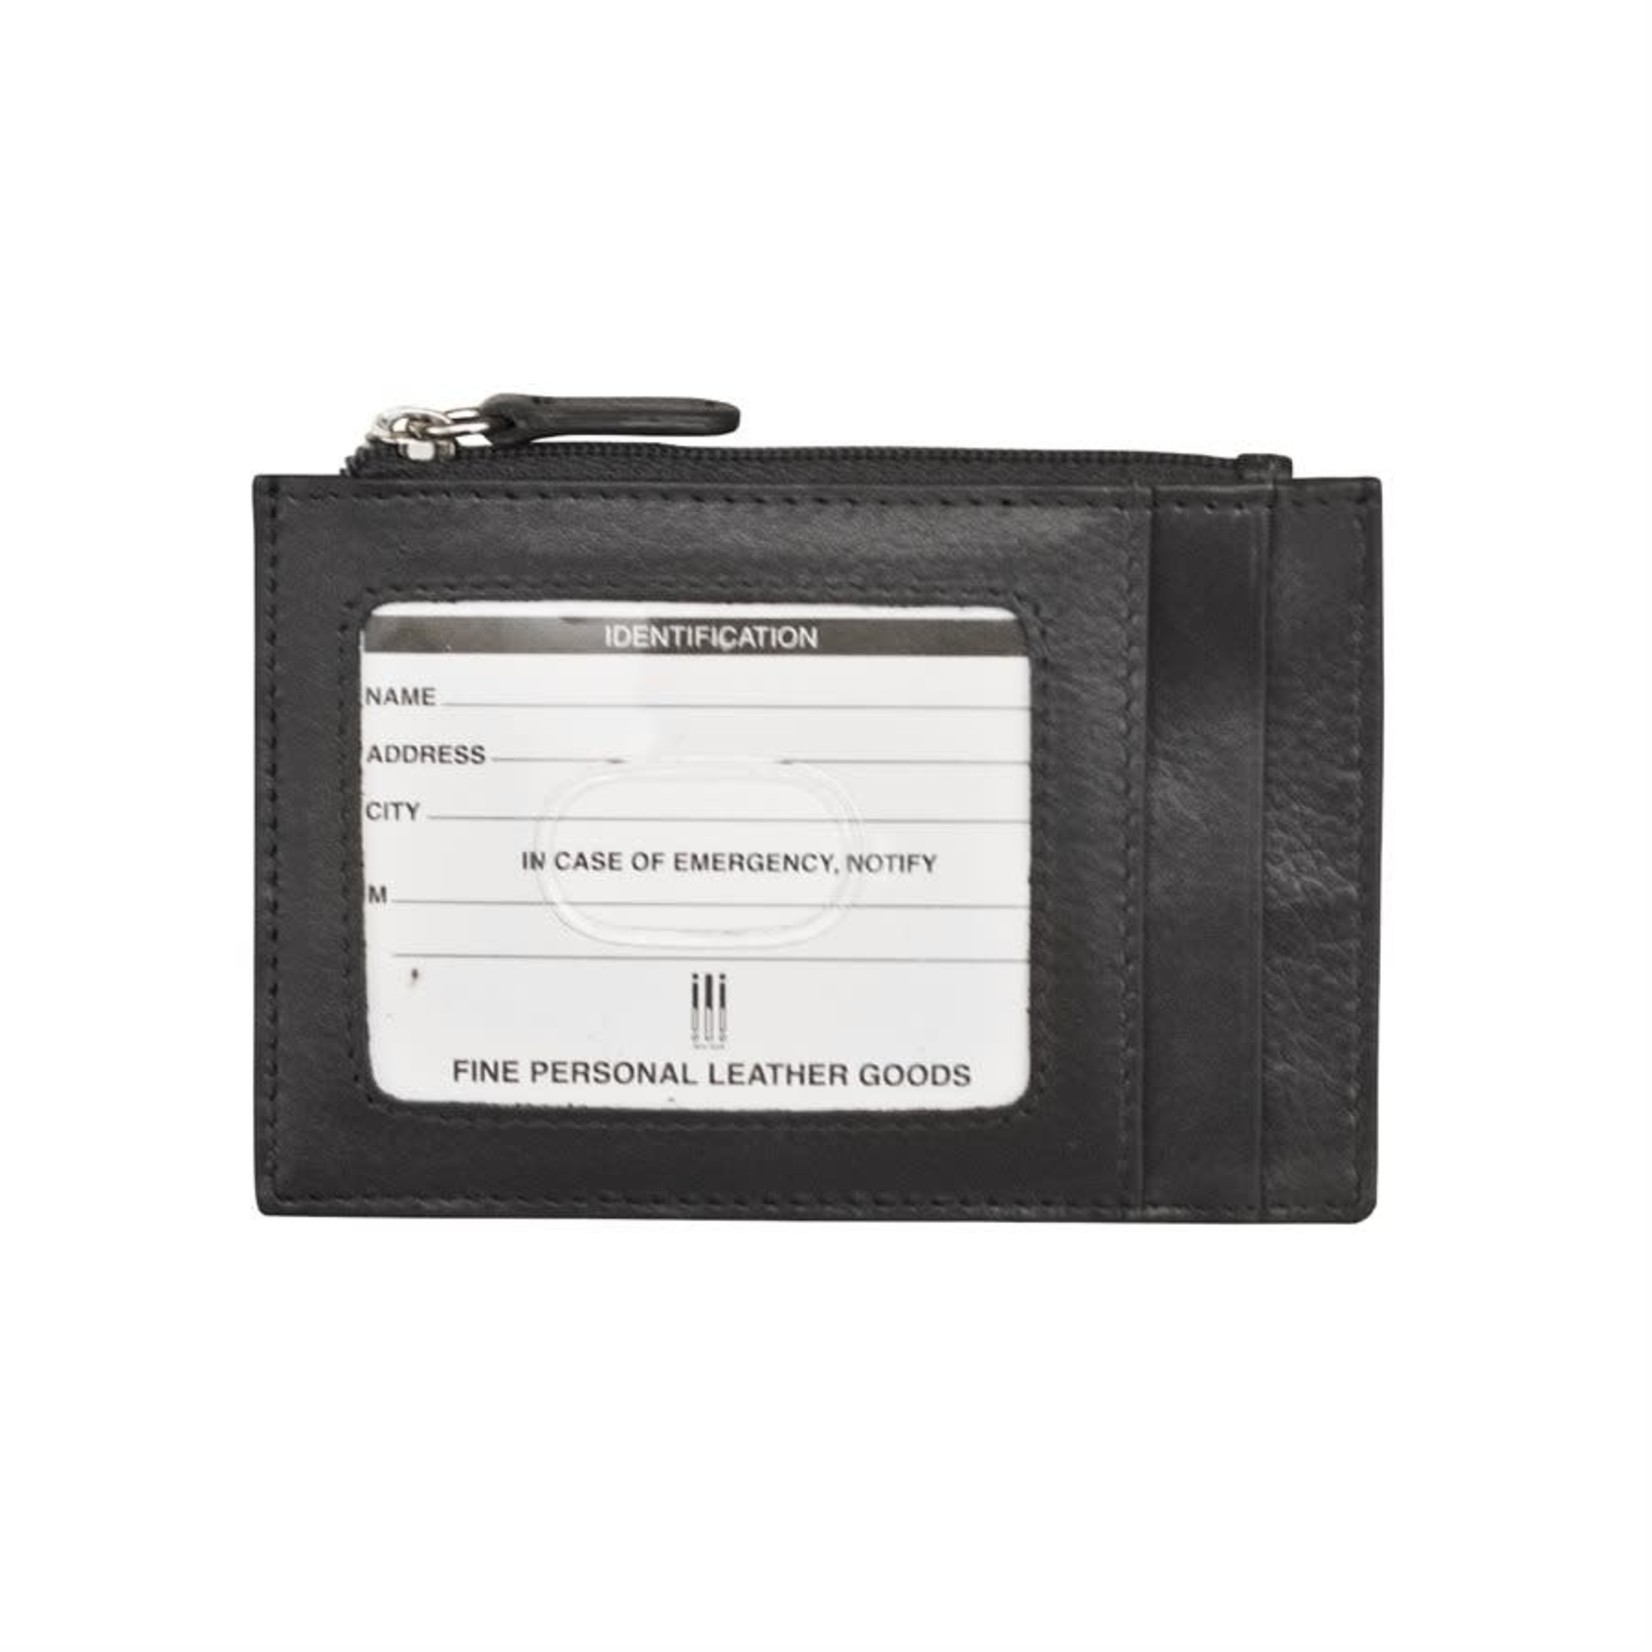 Leather Handbags and Accessories 7416 Black - RFID Card Holder